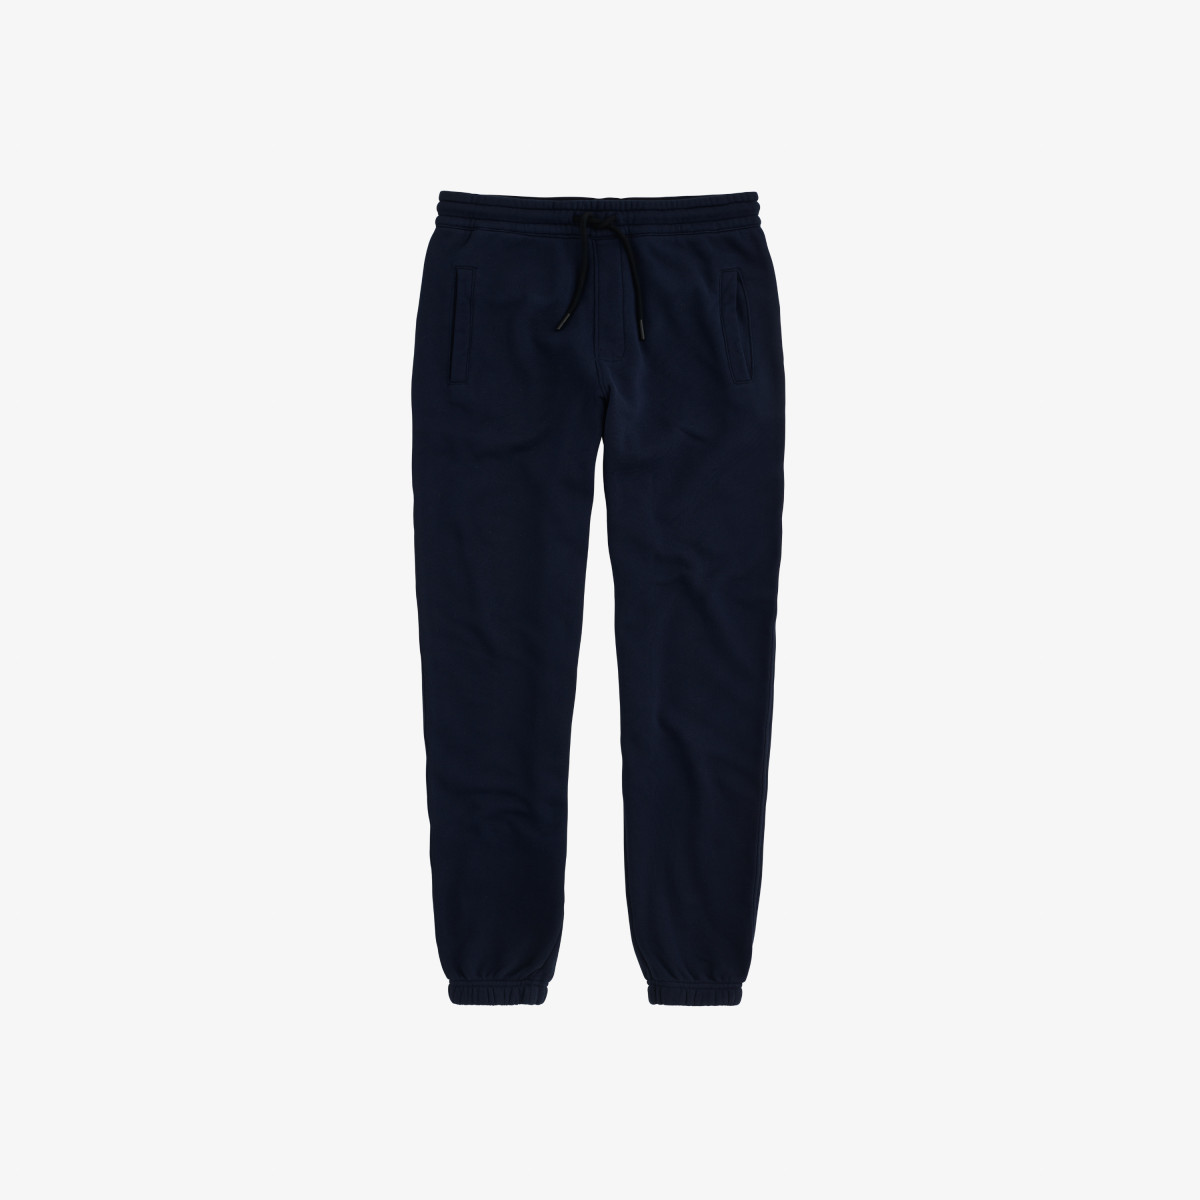 PANT LONG COTT. FL. NAVY BLUE